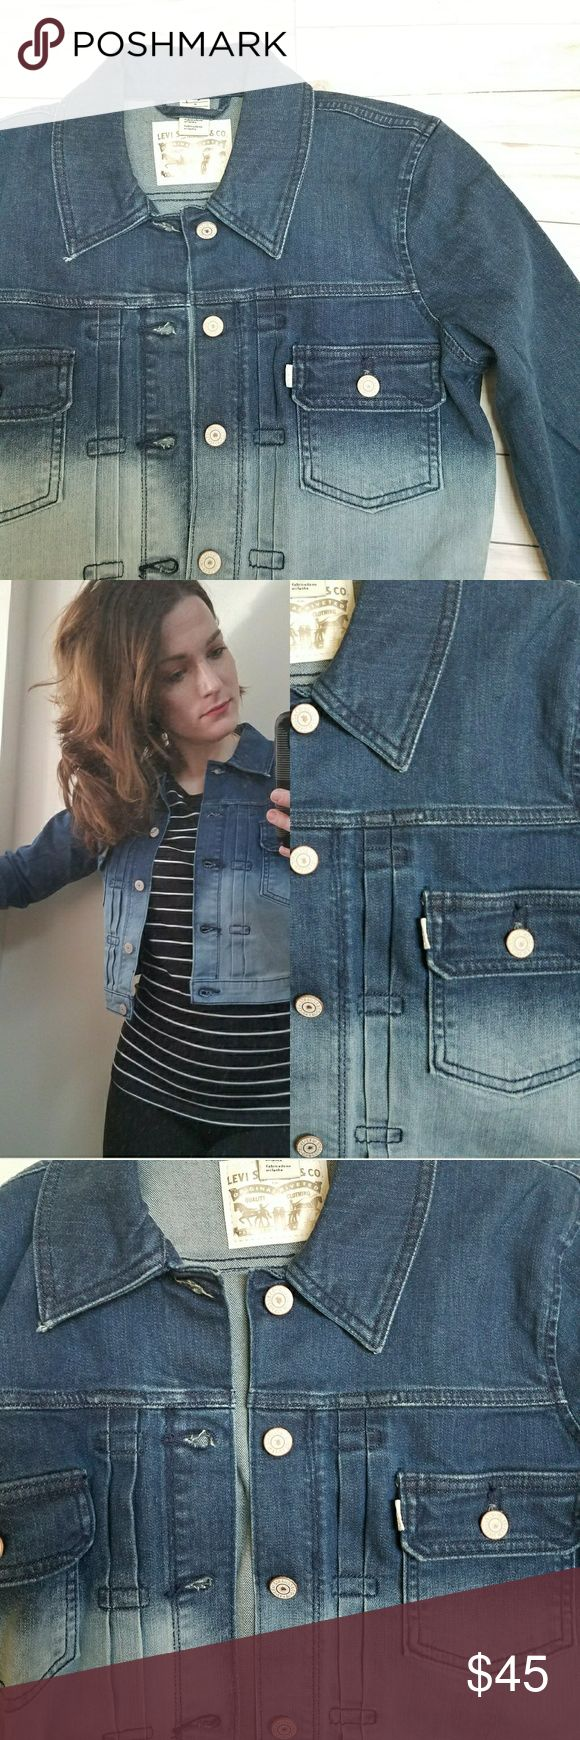 """Levi's • Gradient Dip Dye Denim Jacket Measurements taken while lying flat and buttoned: 19"""" pit to pit 18.5"""" length from shoulder 12"""" Sleeves from under pit   98% Cotton • 2% Elastaine Levi's Jackets & Coats Jean Jackets"""